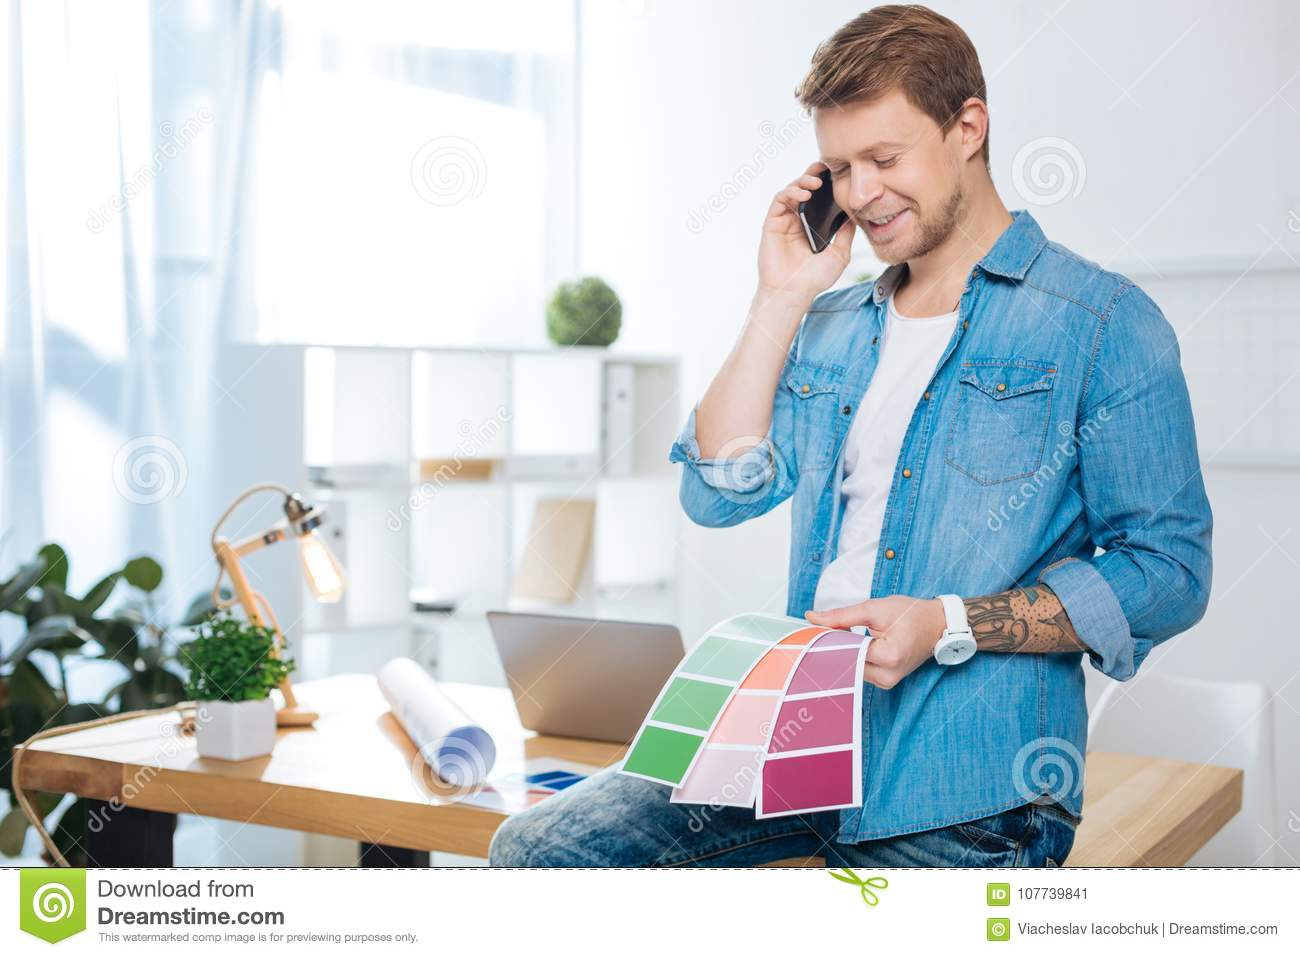 Cheerful man talking on the phone while holding color palettes